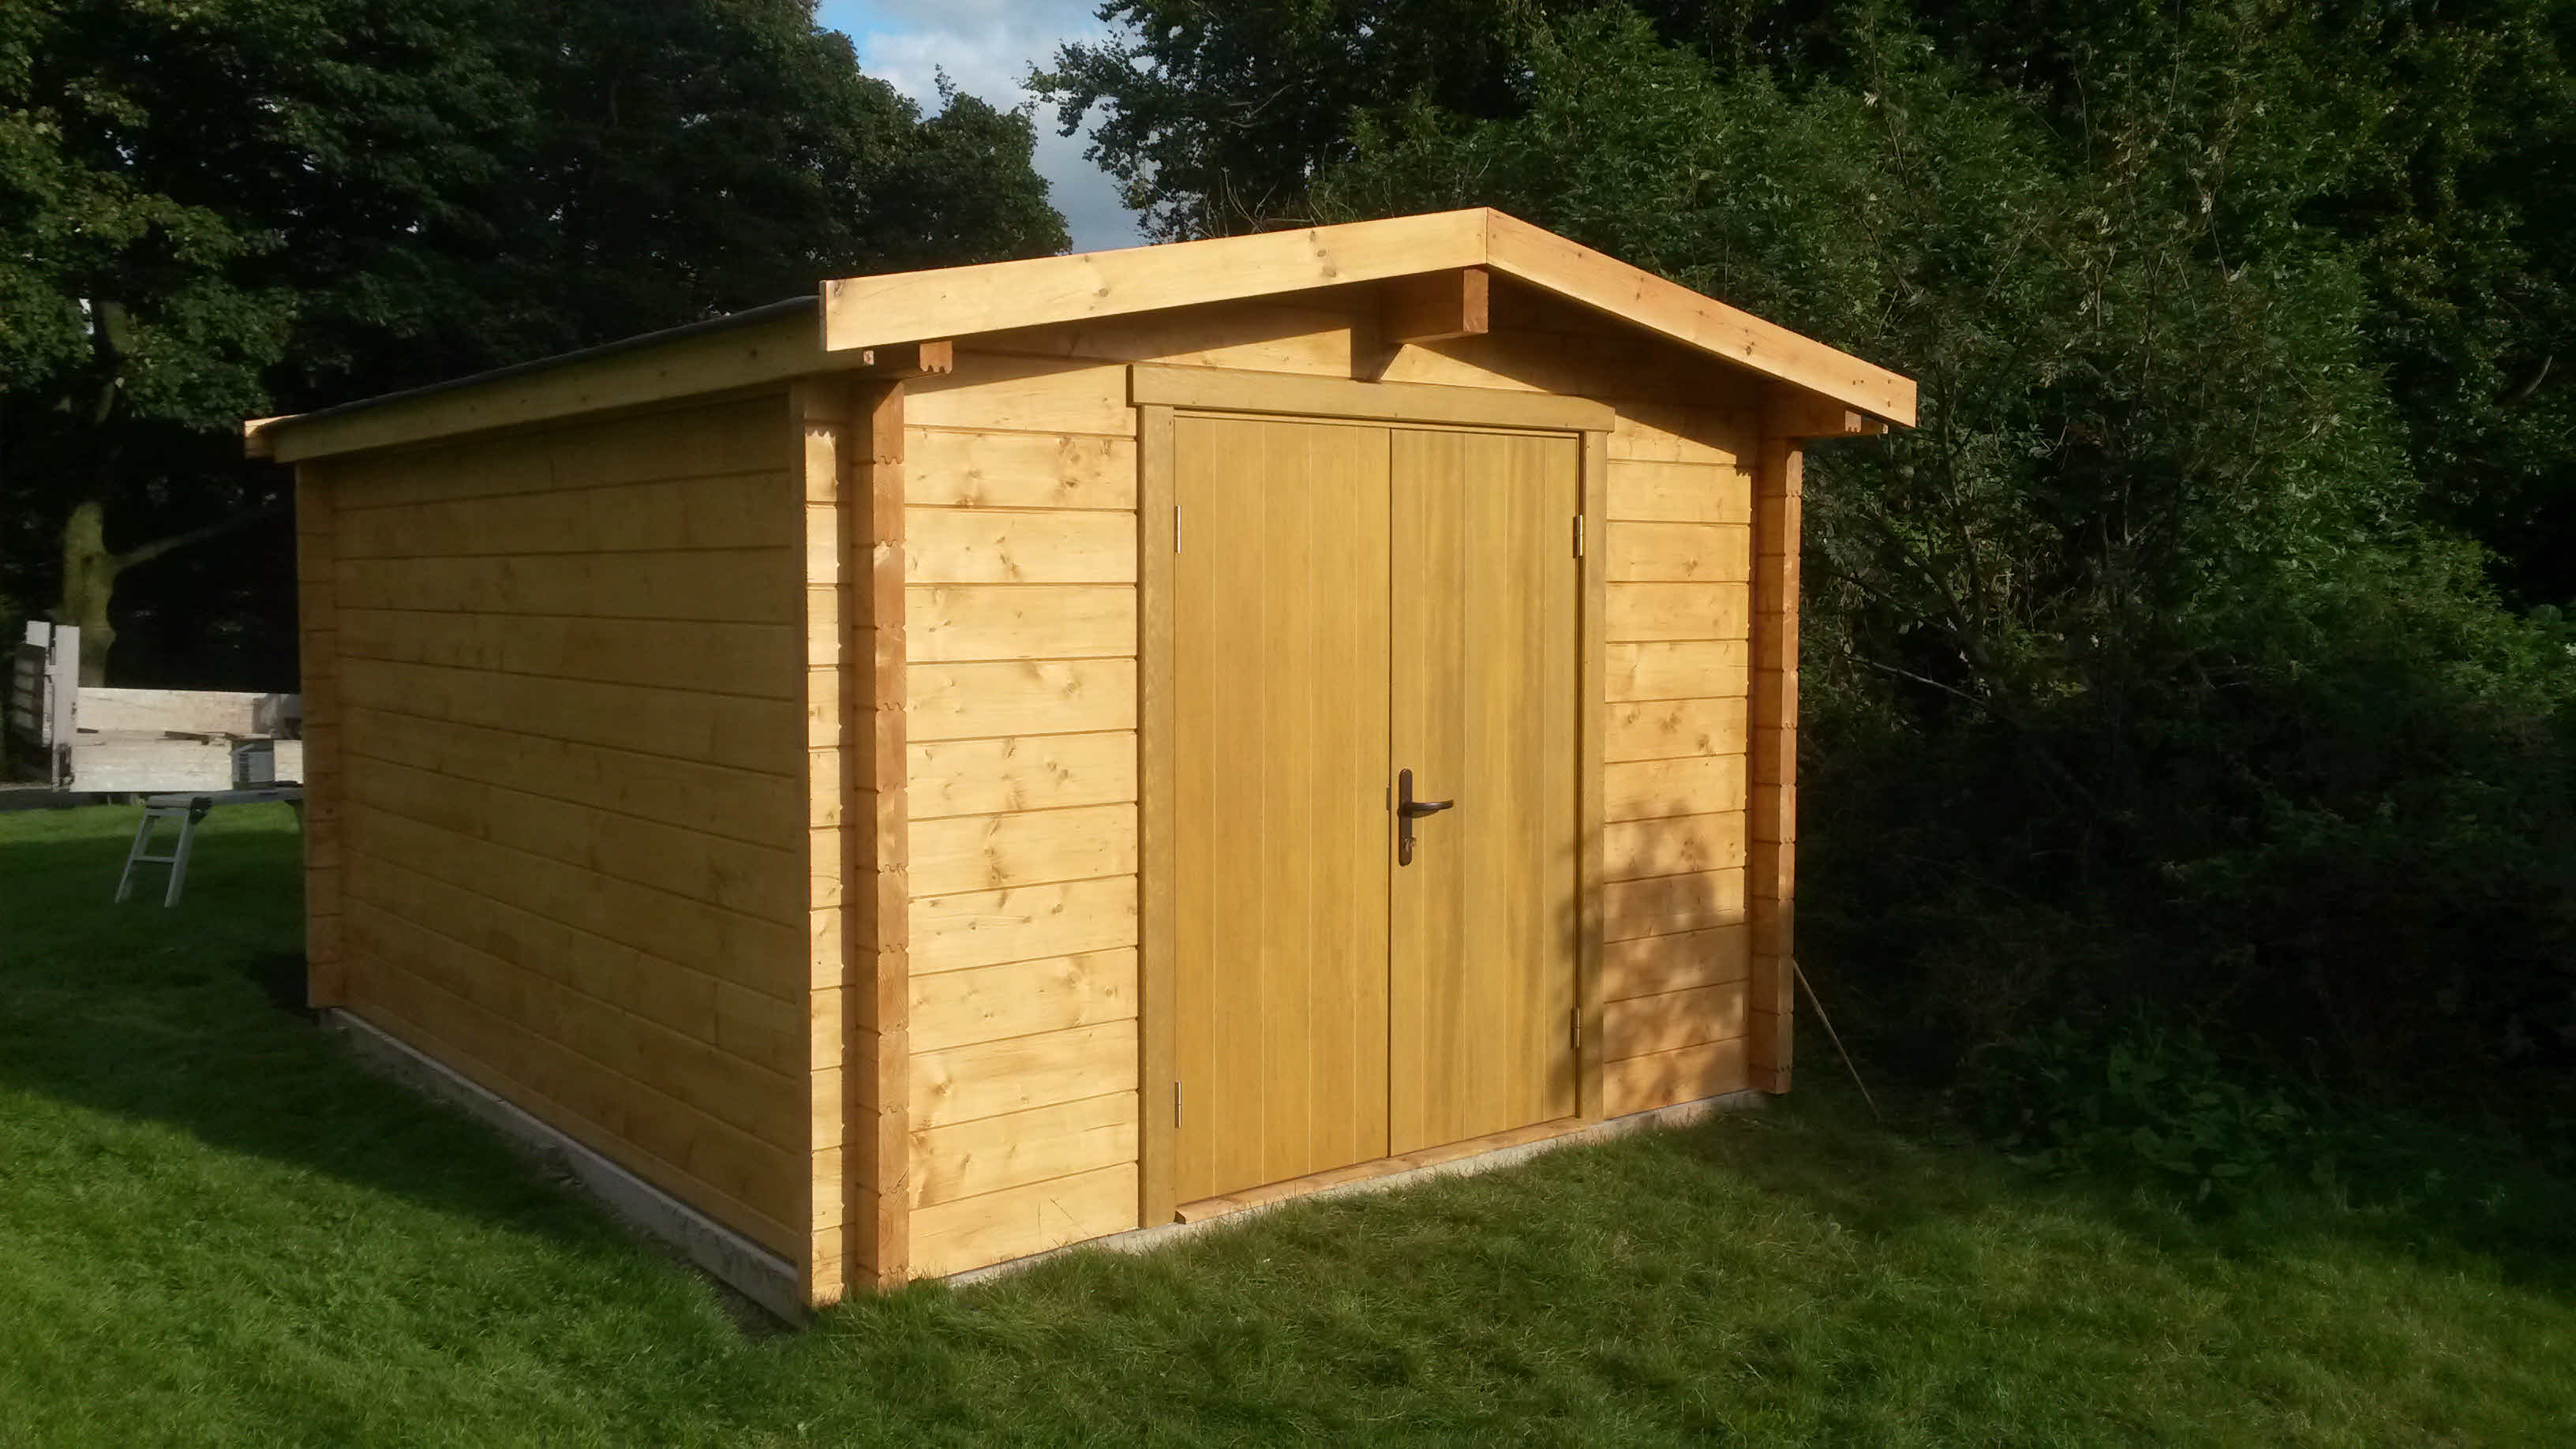 Timber Cabin Installation 3m x 4m Bracewell